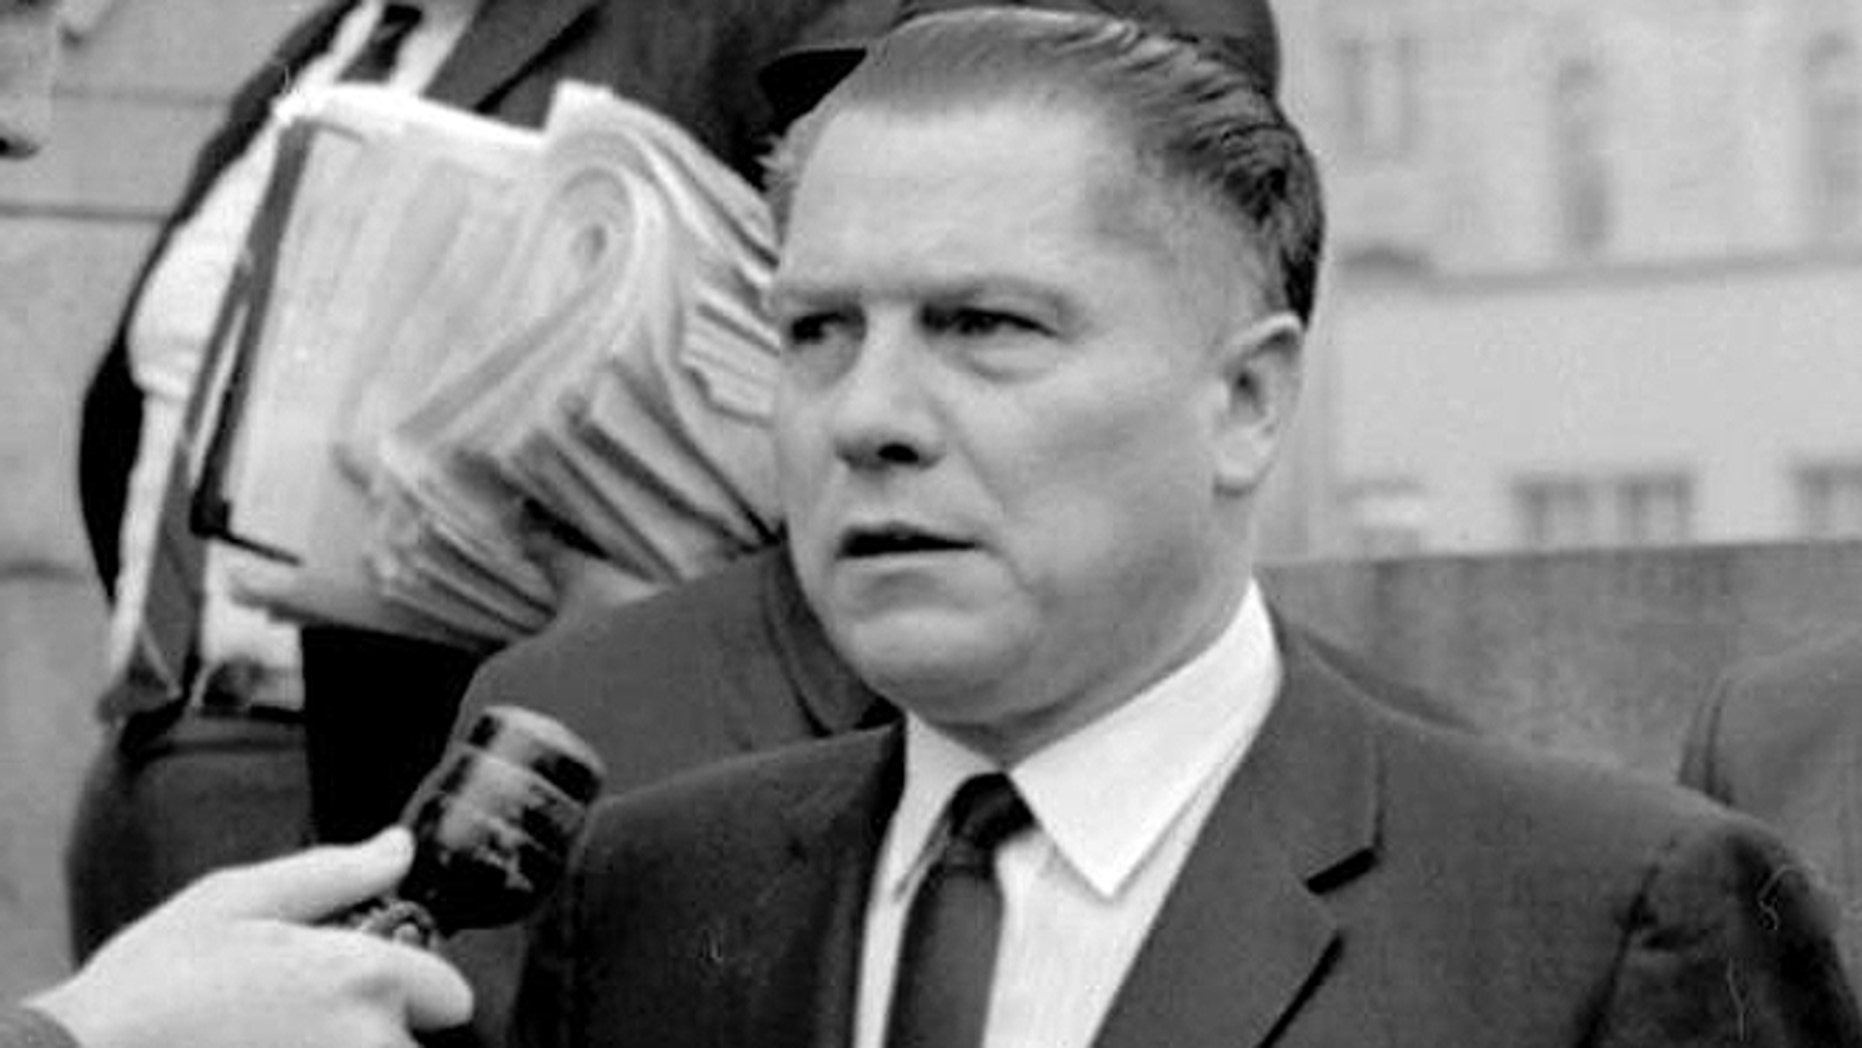 Labor leader Jimmy Hoffa, who was 62 at the time, disappeared in July 1975. He was declared legally dead in 1982. (AP)